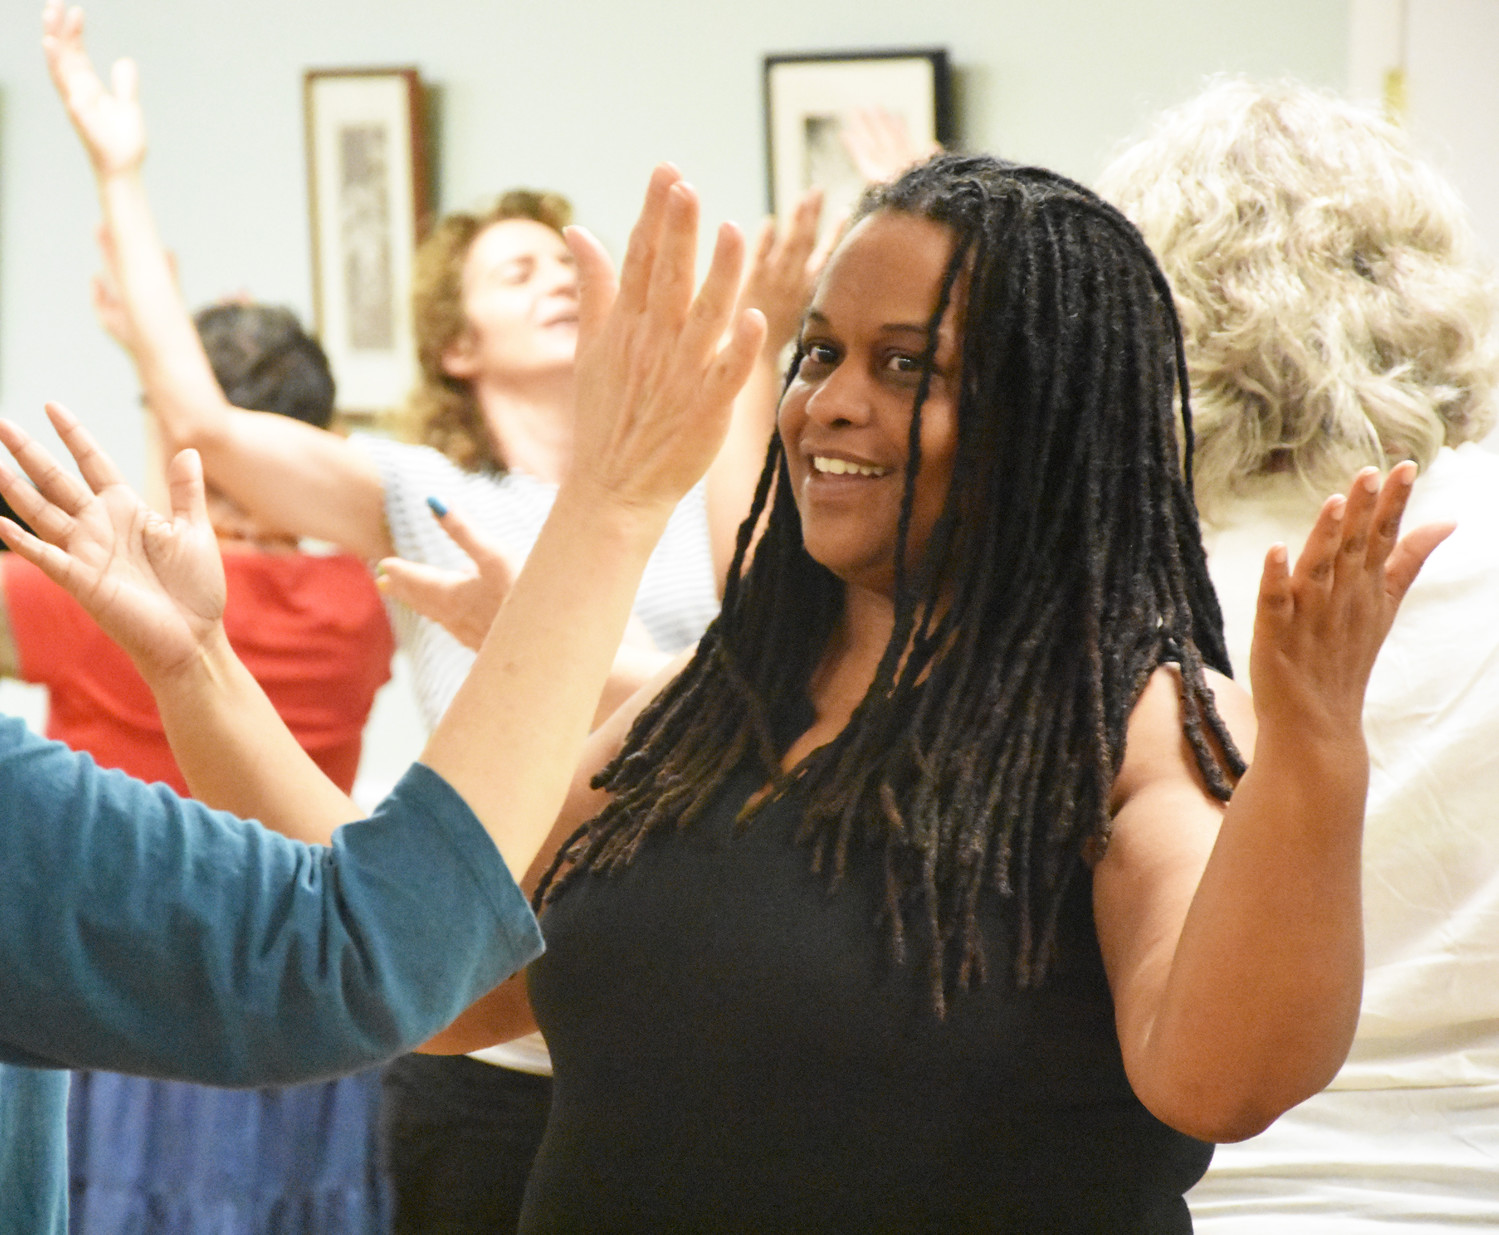 Michelle Chamblin danced during the first ever dances for peace at the Baha'i Center.